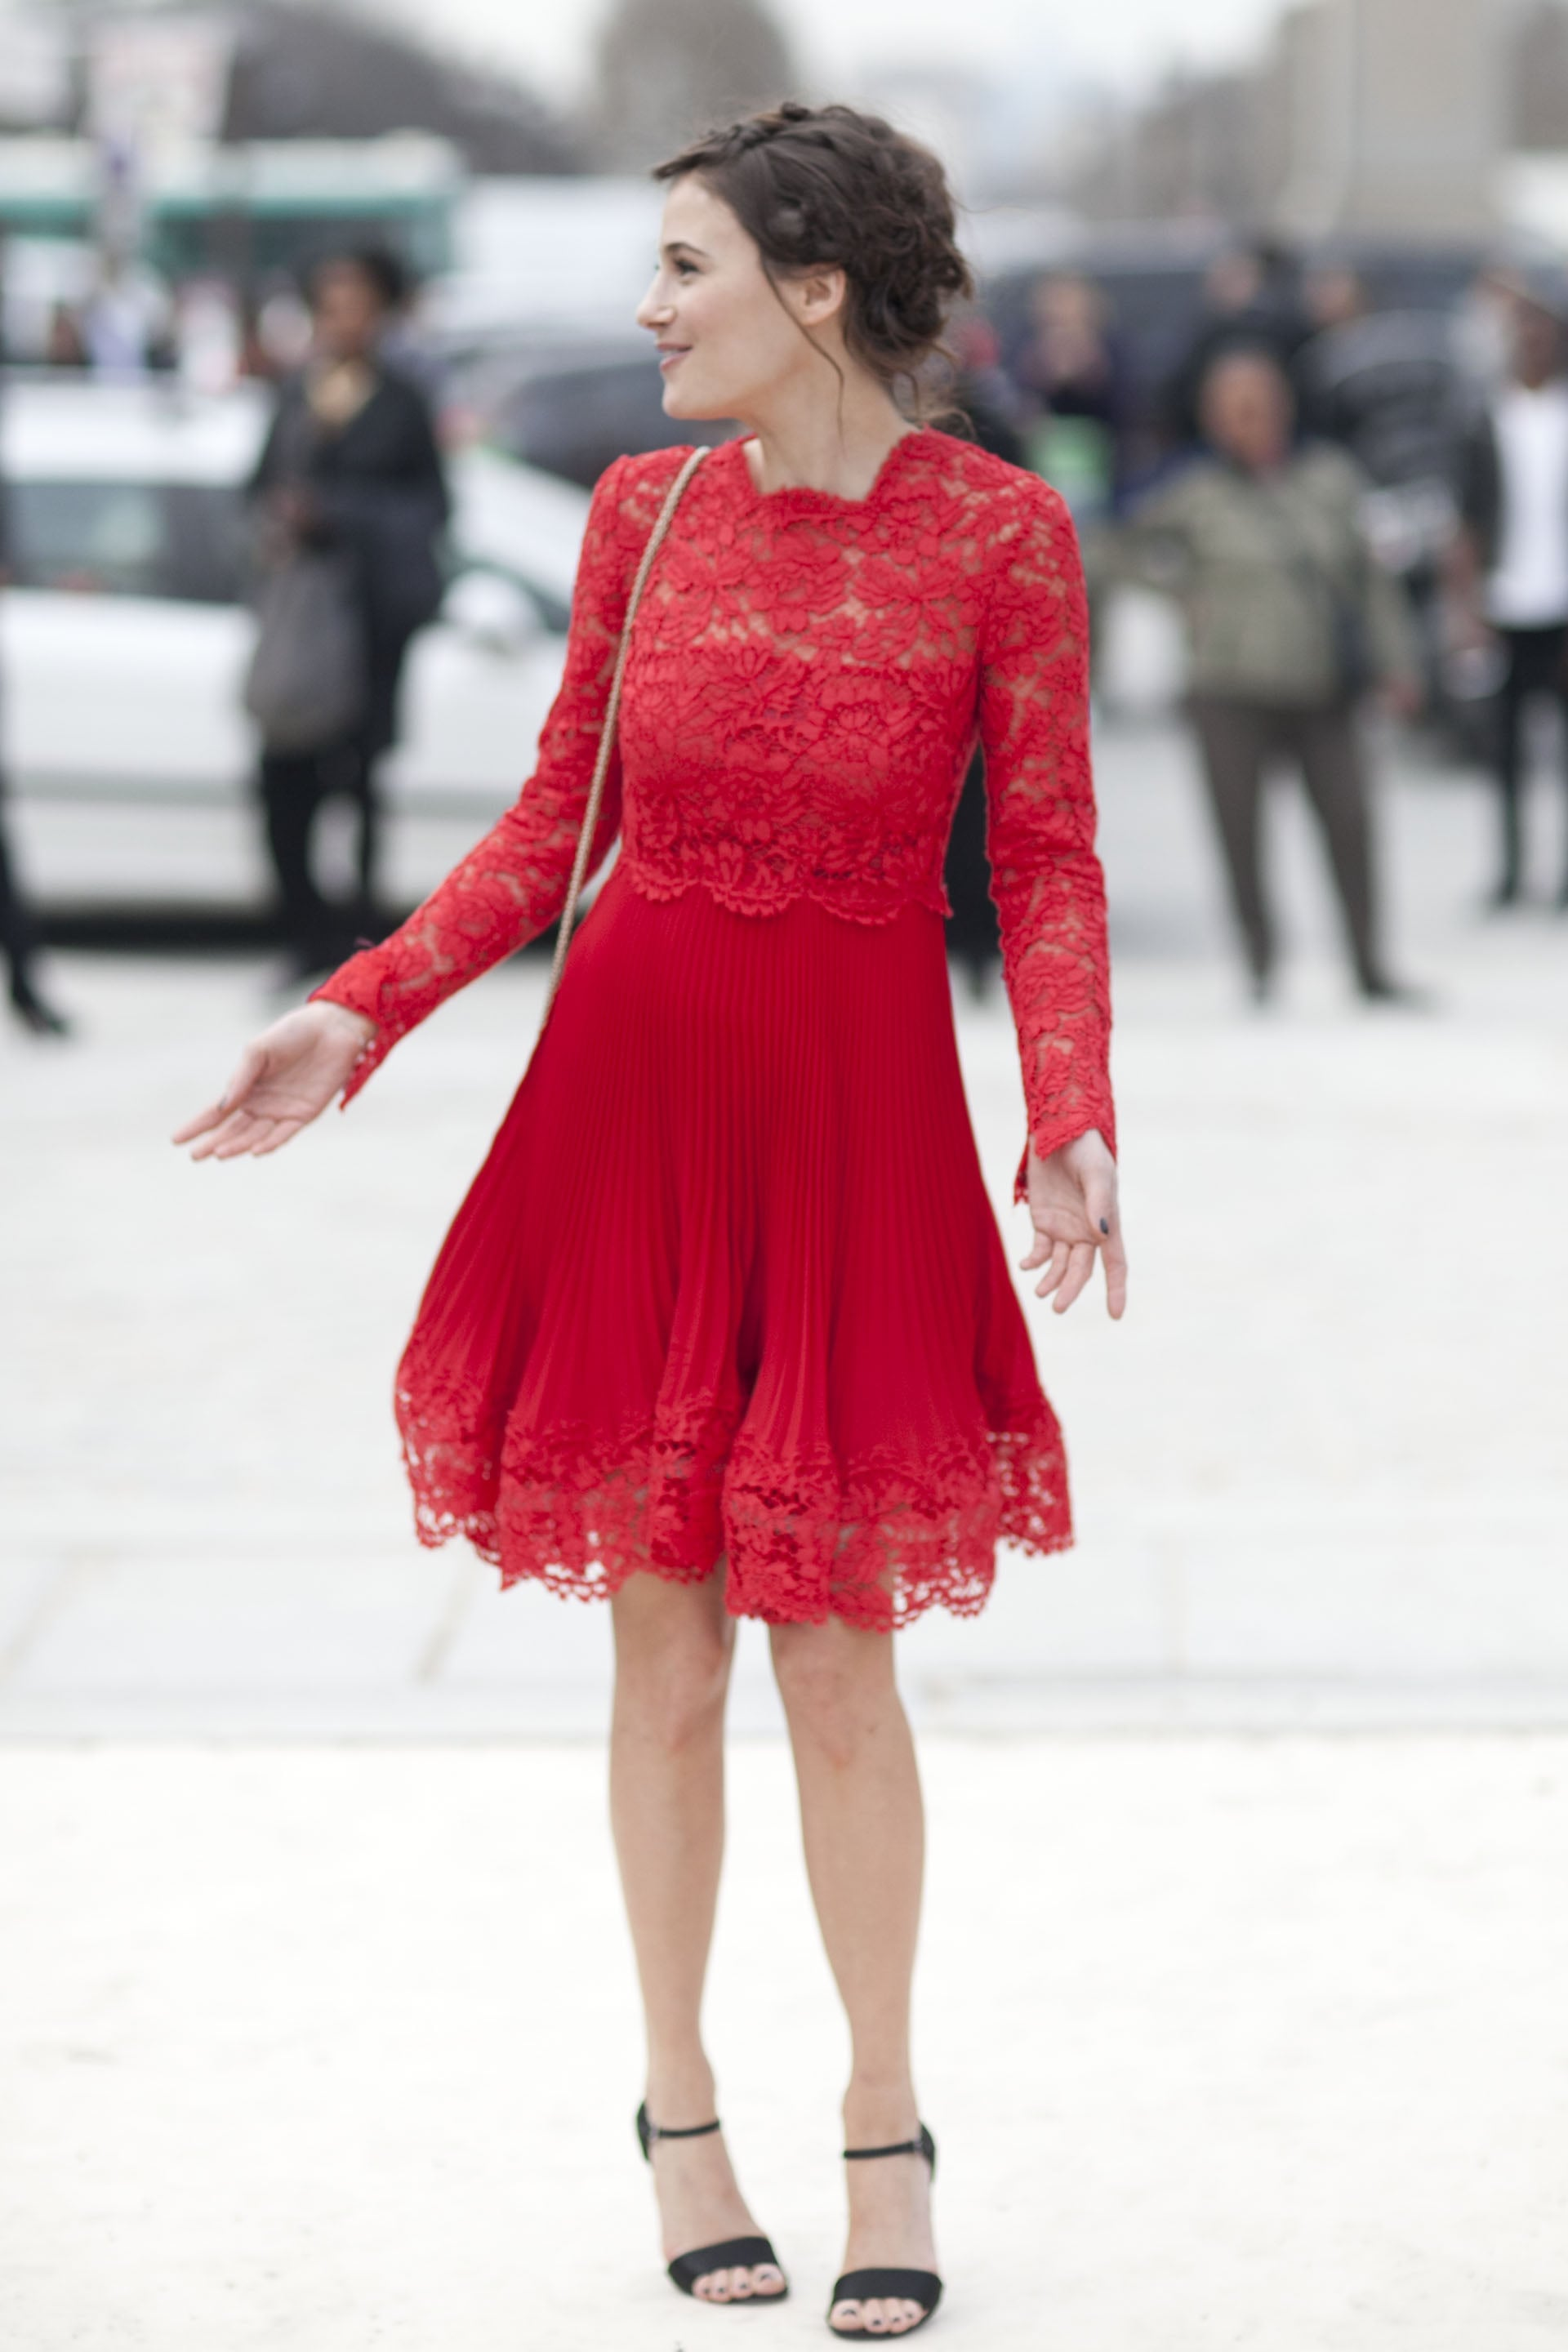 And what's more festive than red lace? Truly, nothing!